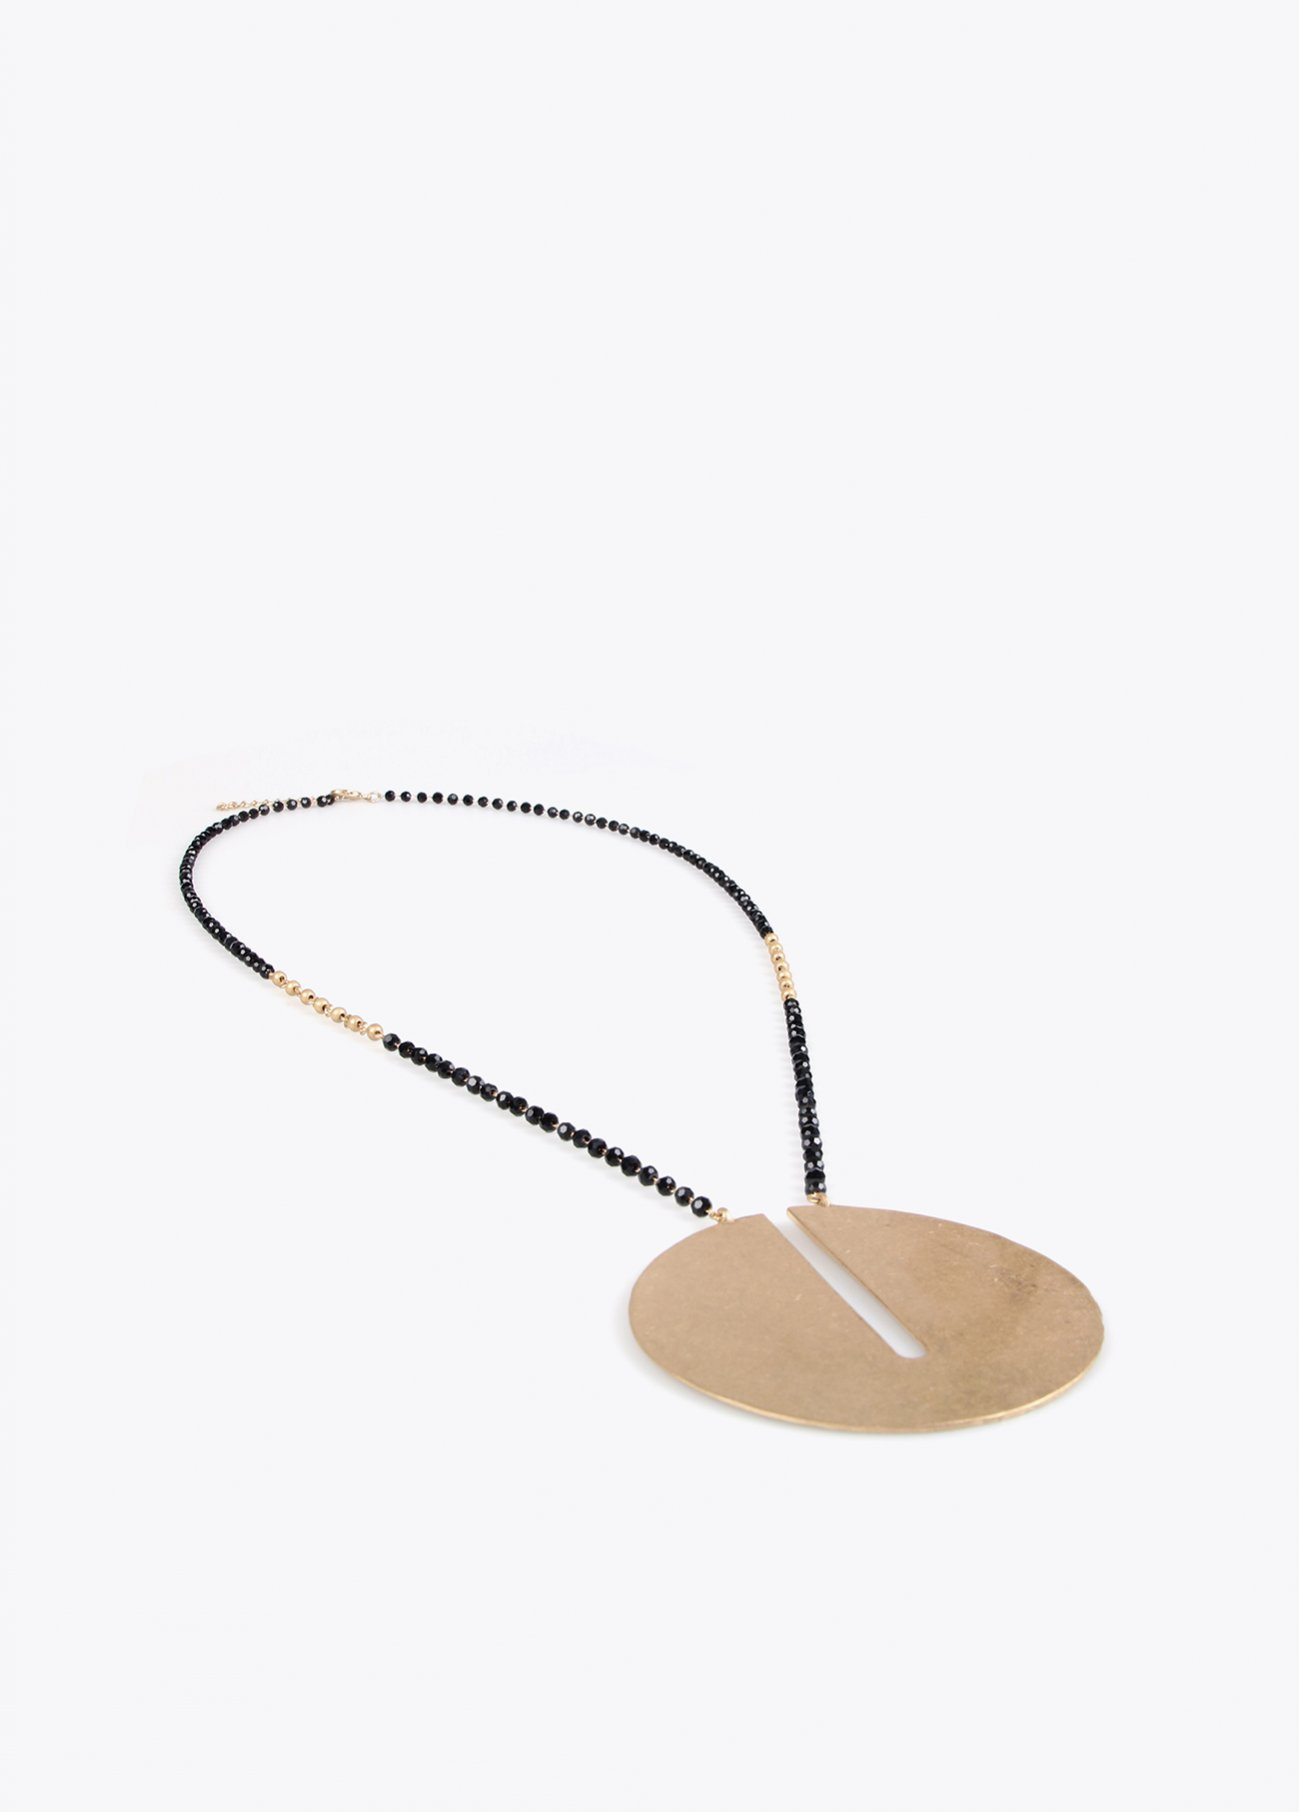 Faceted stones long necklace with round